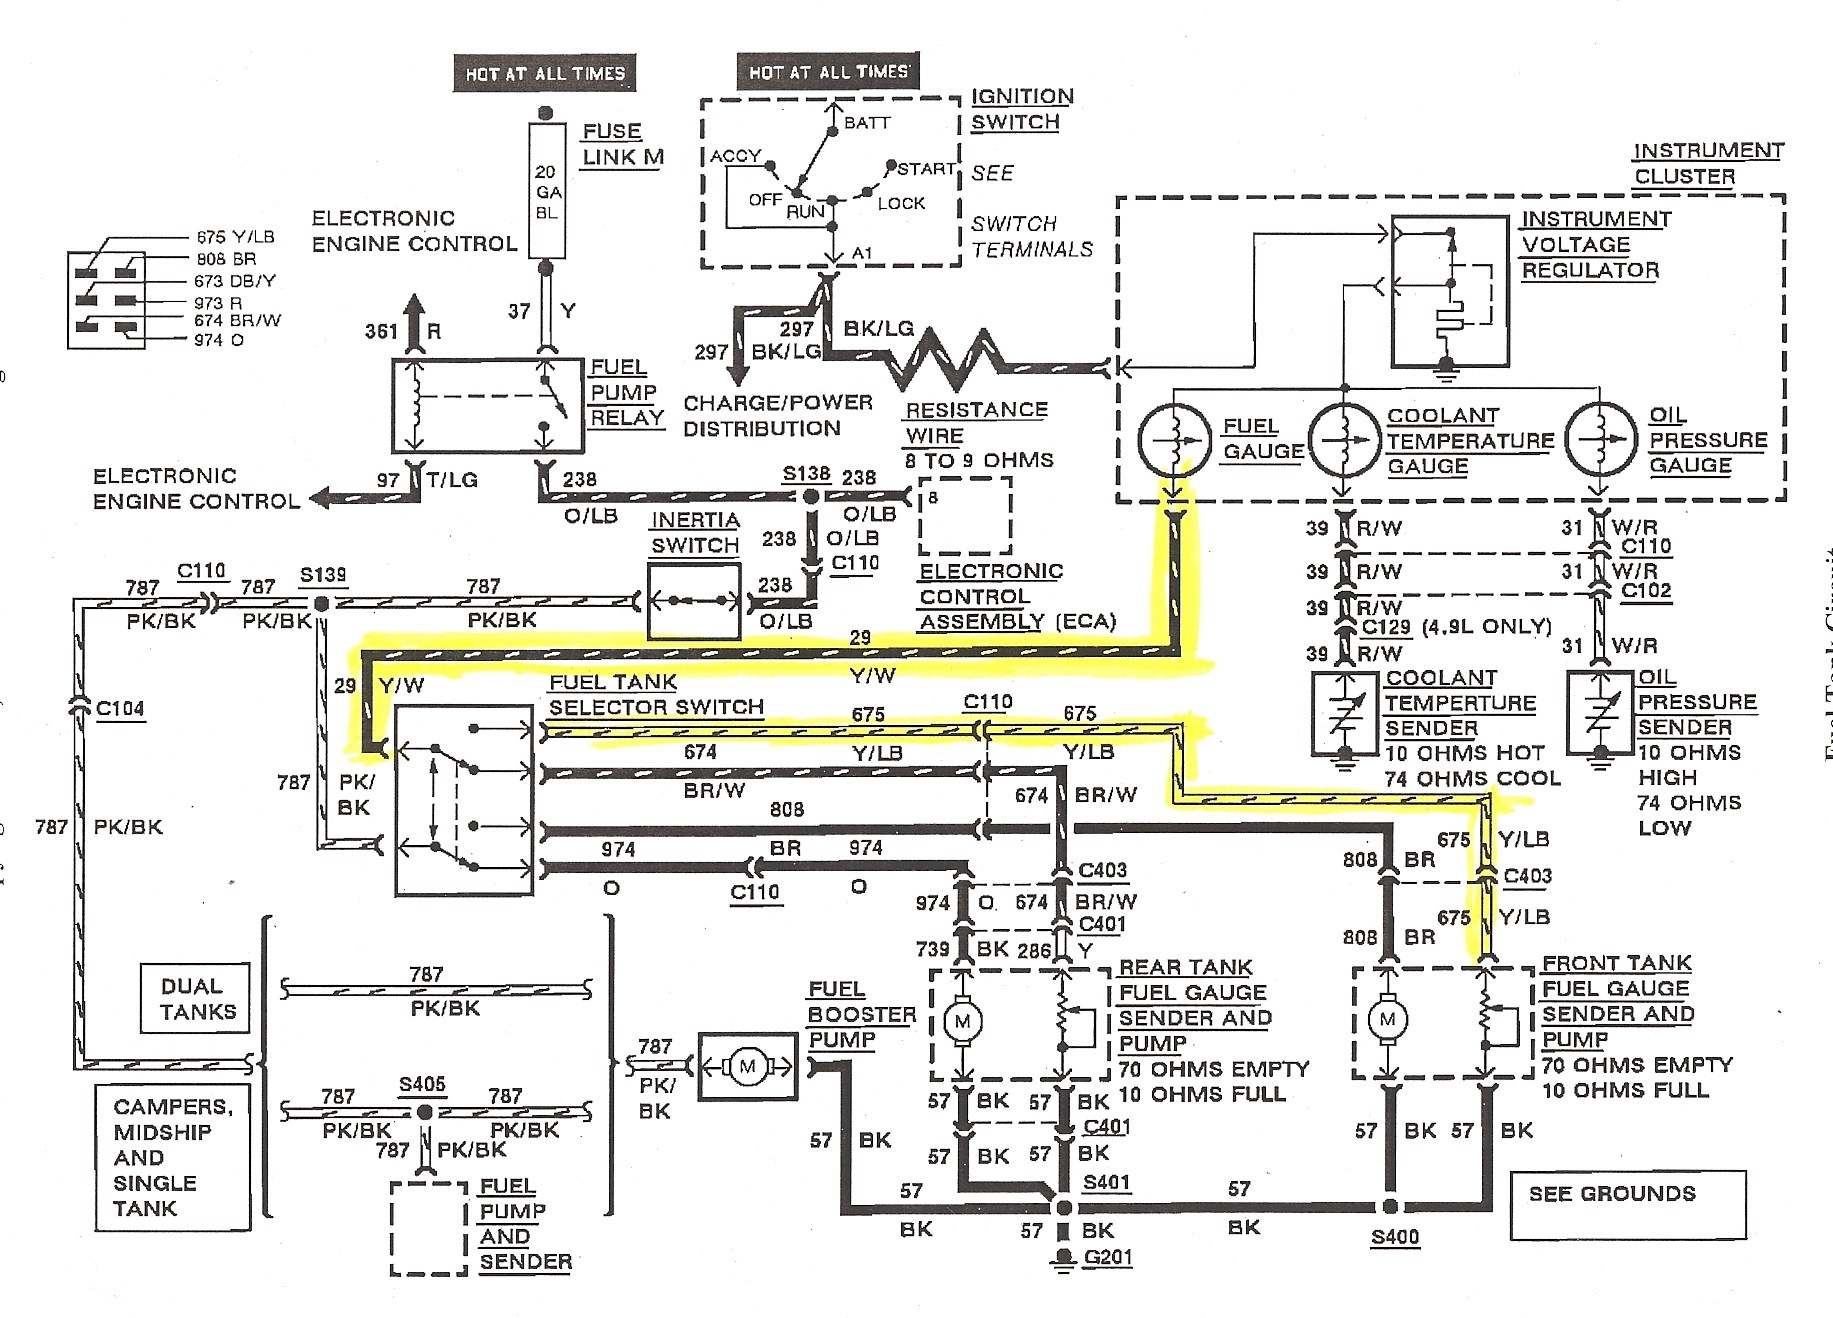 hight resolution of 1990 ford mustang fuel gauge wiring wiring diagram used 1990 ford mustang fuel gauge wiring